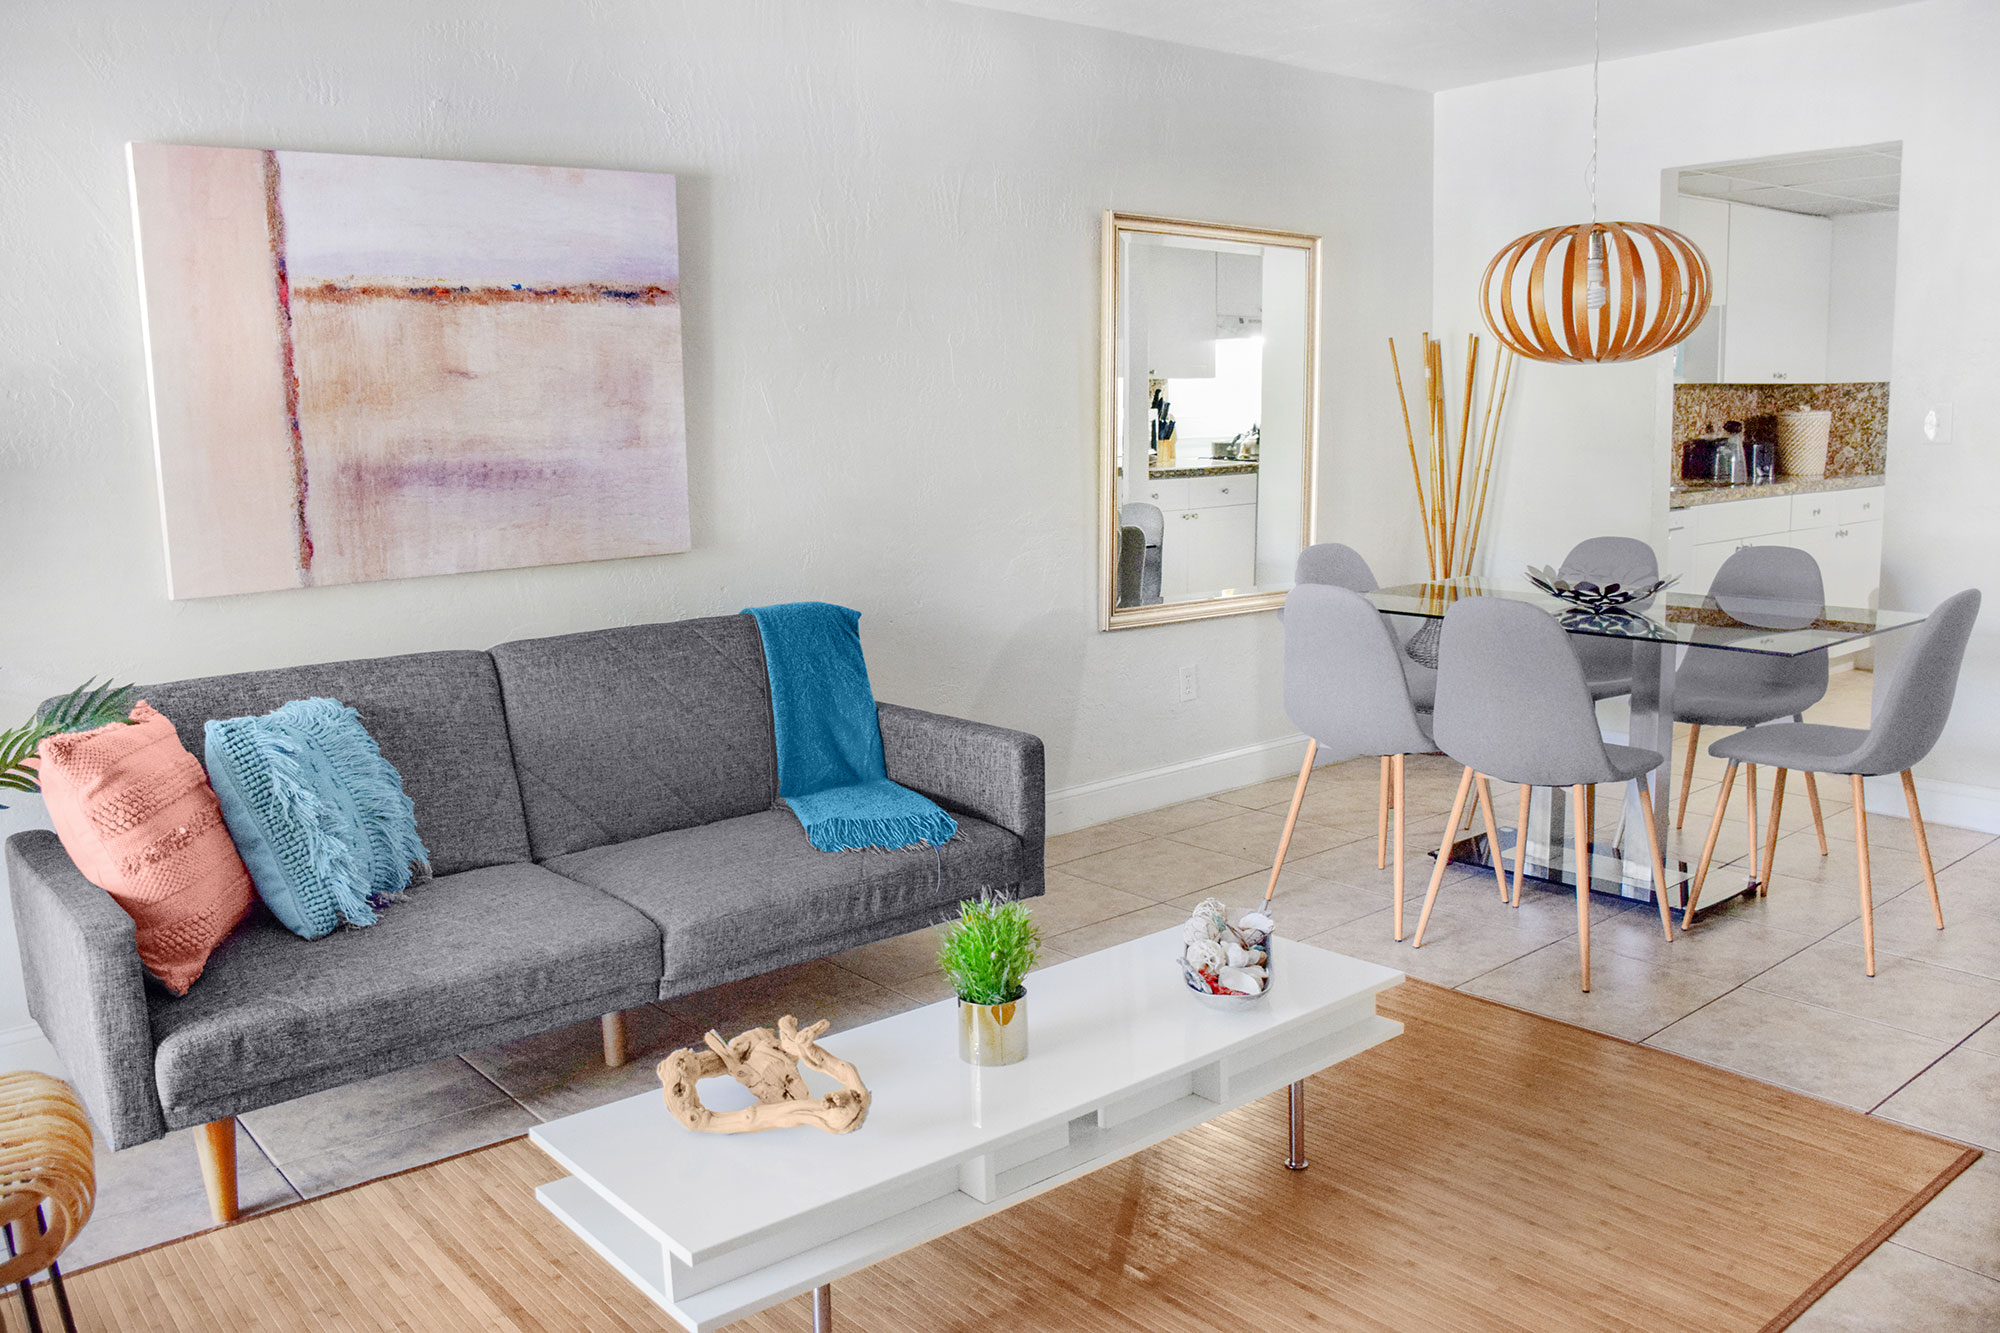 Living Room of renovated 2 bedroom apartment at Coral Reef